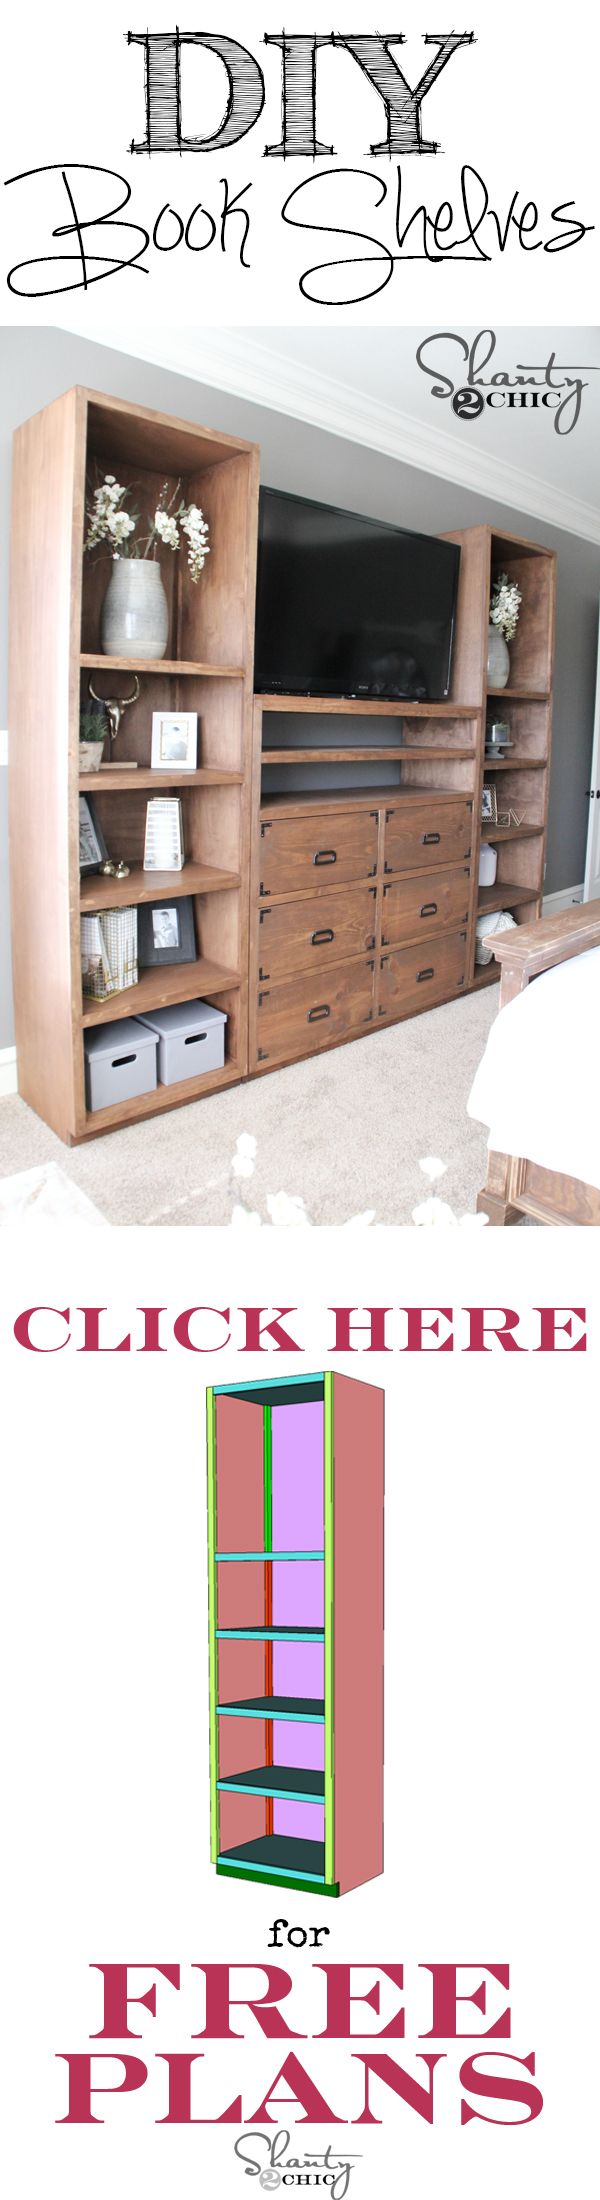 Free Plans and how-to tutorial to build your own book shelves at www.shanty-2-chic.com